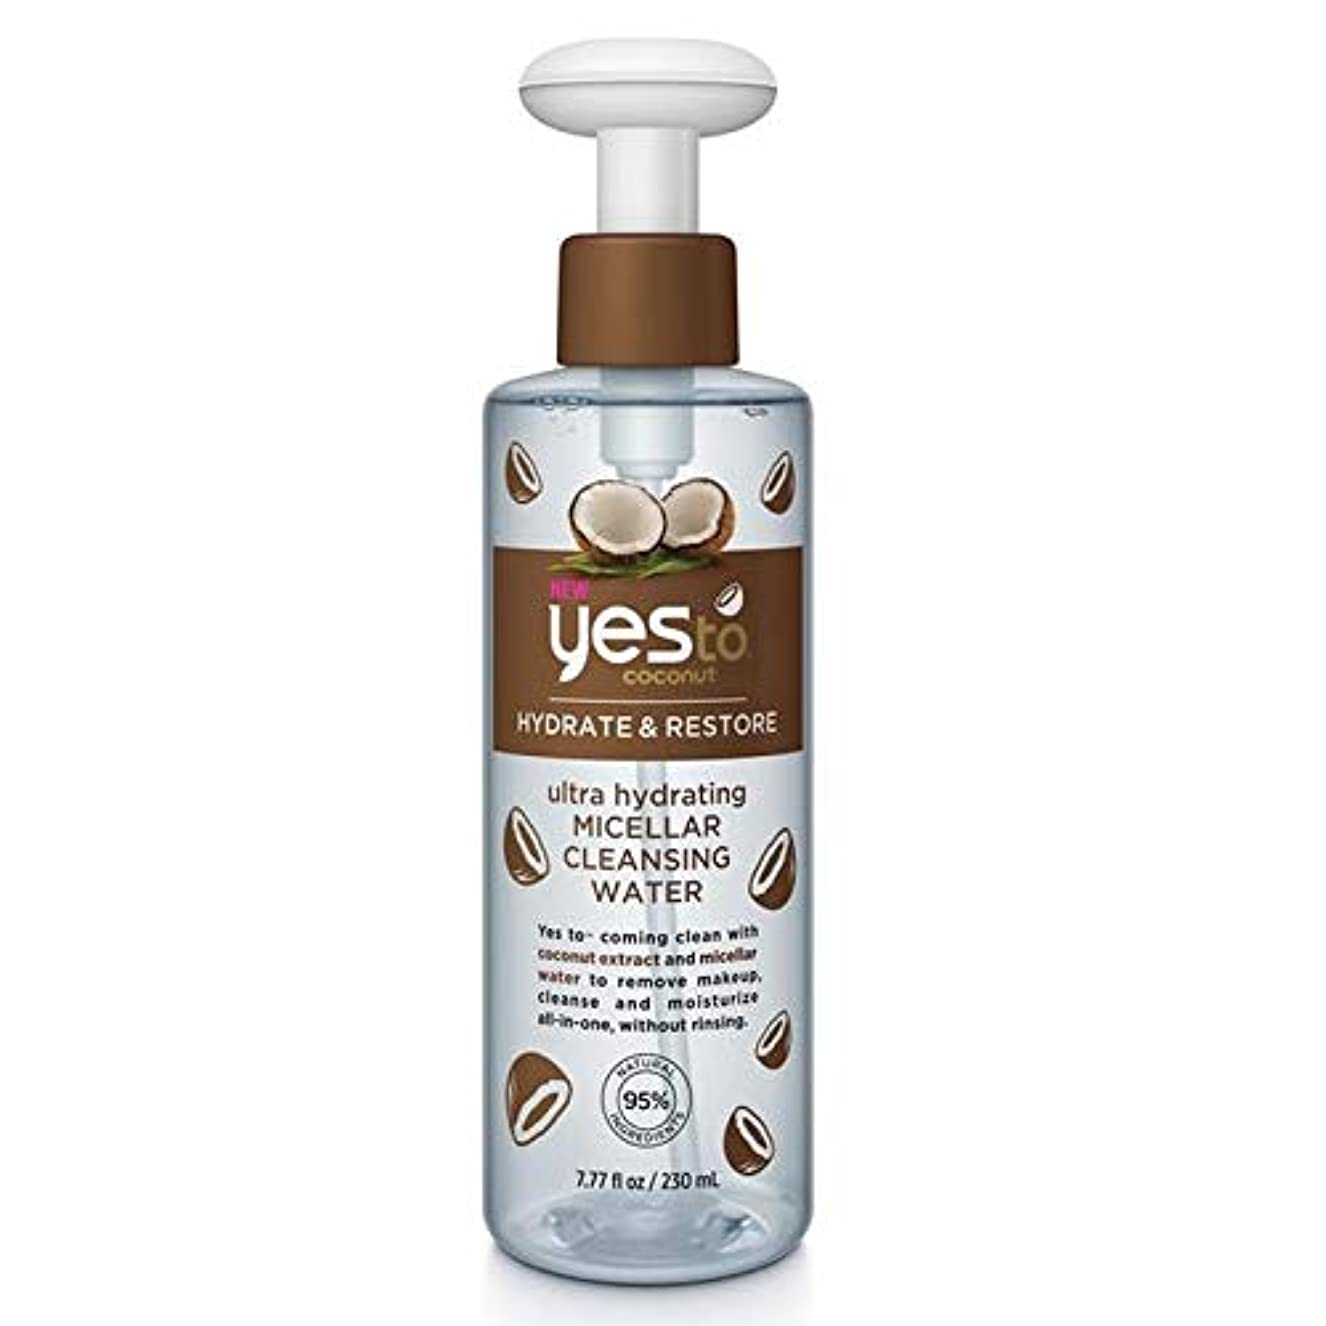 [YES TO!] Yesにココナッツミセル洗浄水超水和230ミリリットル - Yes To Coconut Micellar Cleansing Water Ultra Hydrating 230ml [並行輸入品]